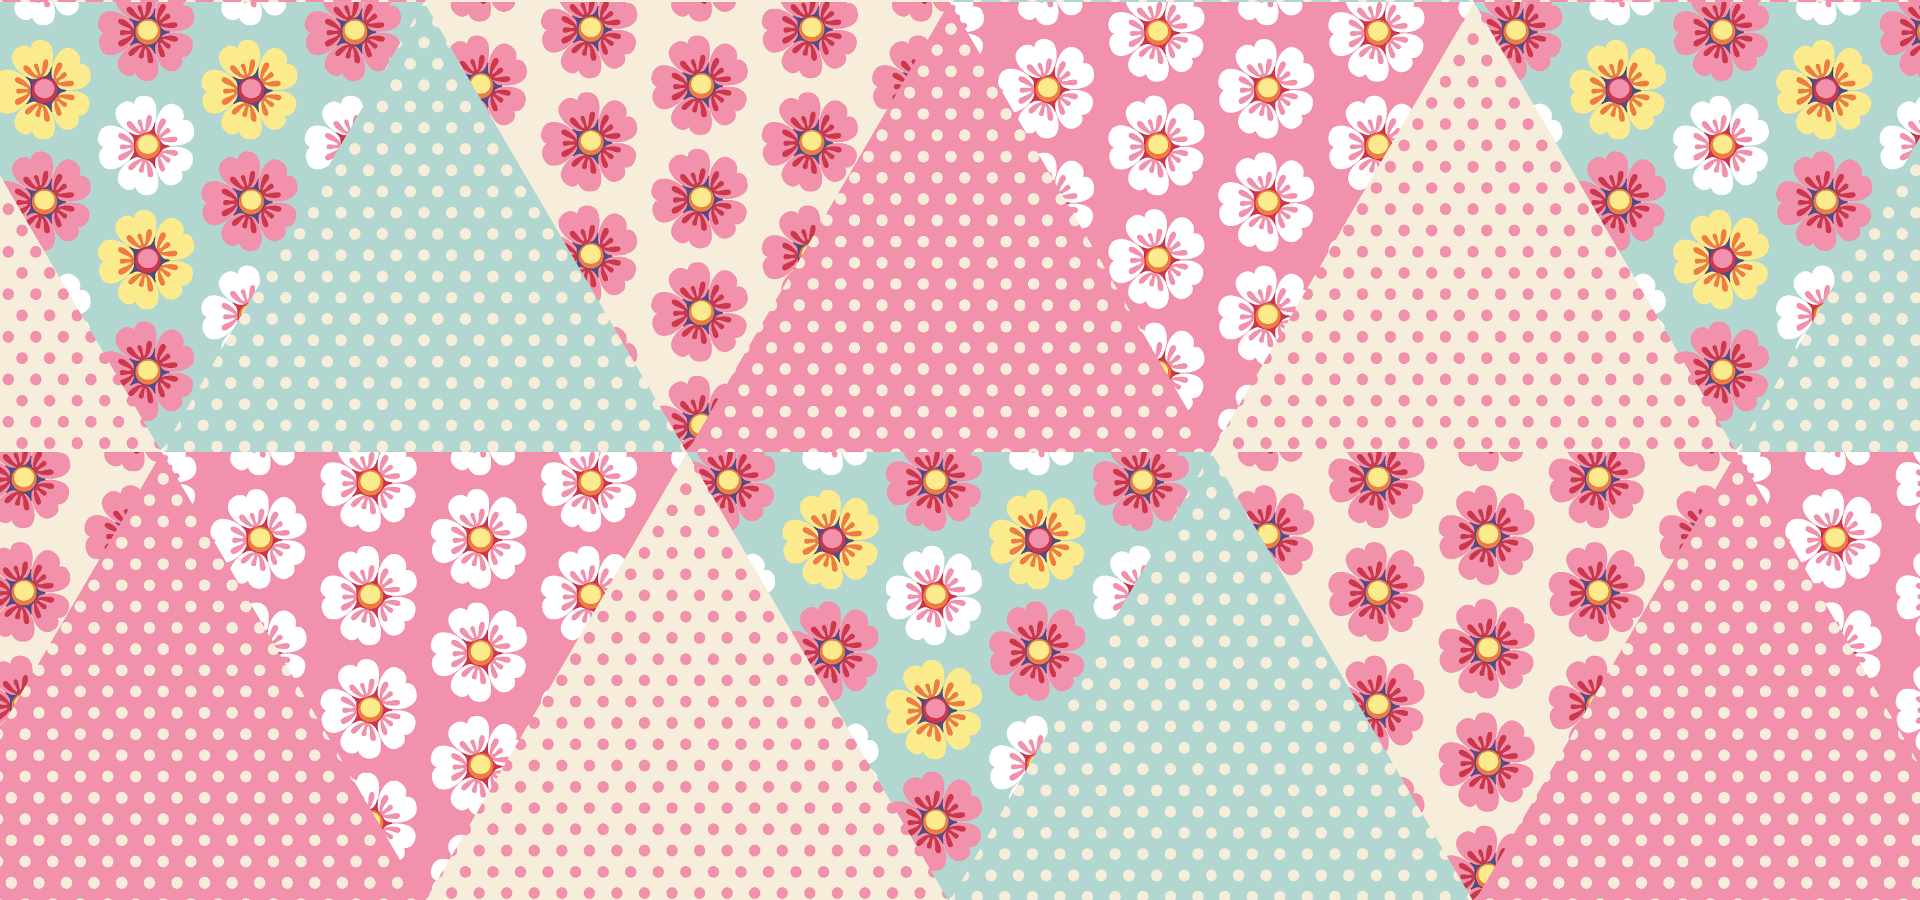 Spring flowers pattern collection - petits pixels